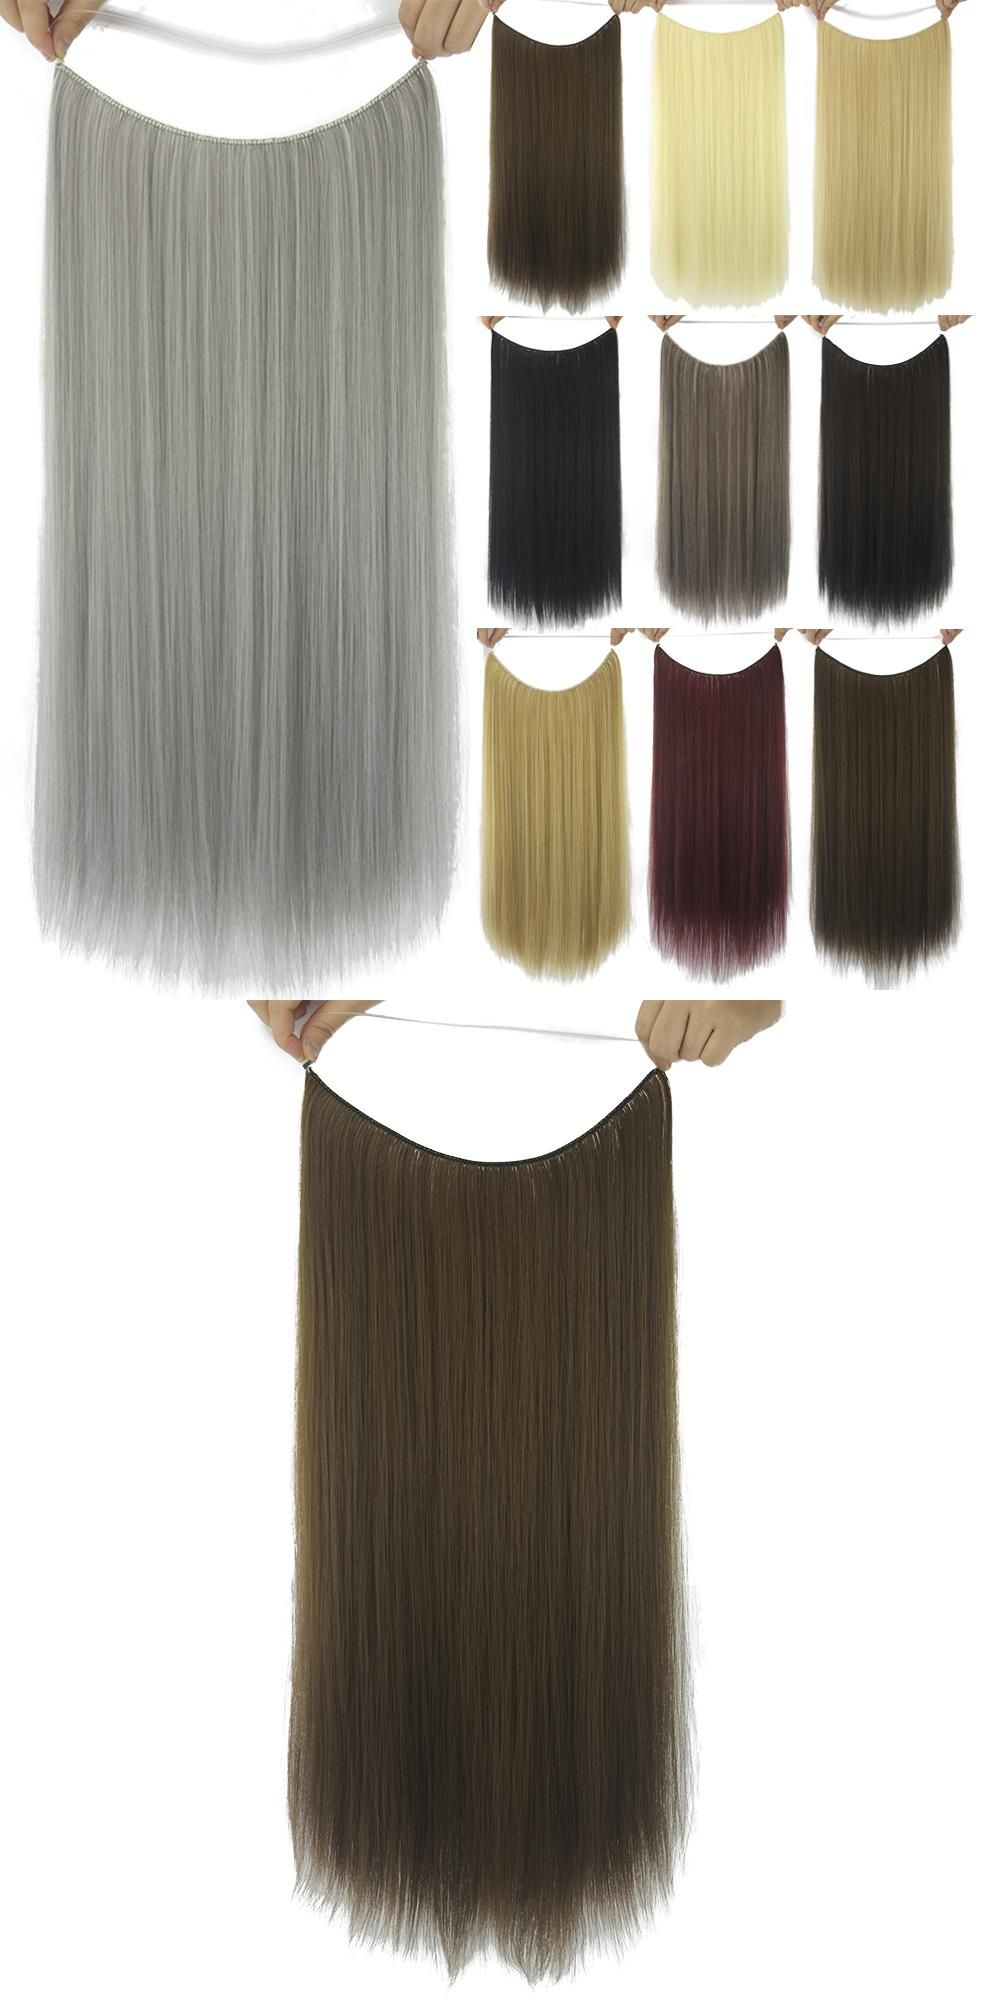 Soowee 10 Colors Long Straight Gray Black Synthetic Hair Extensions